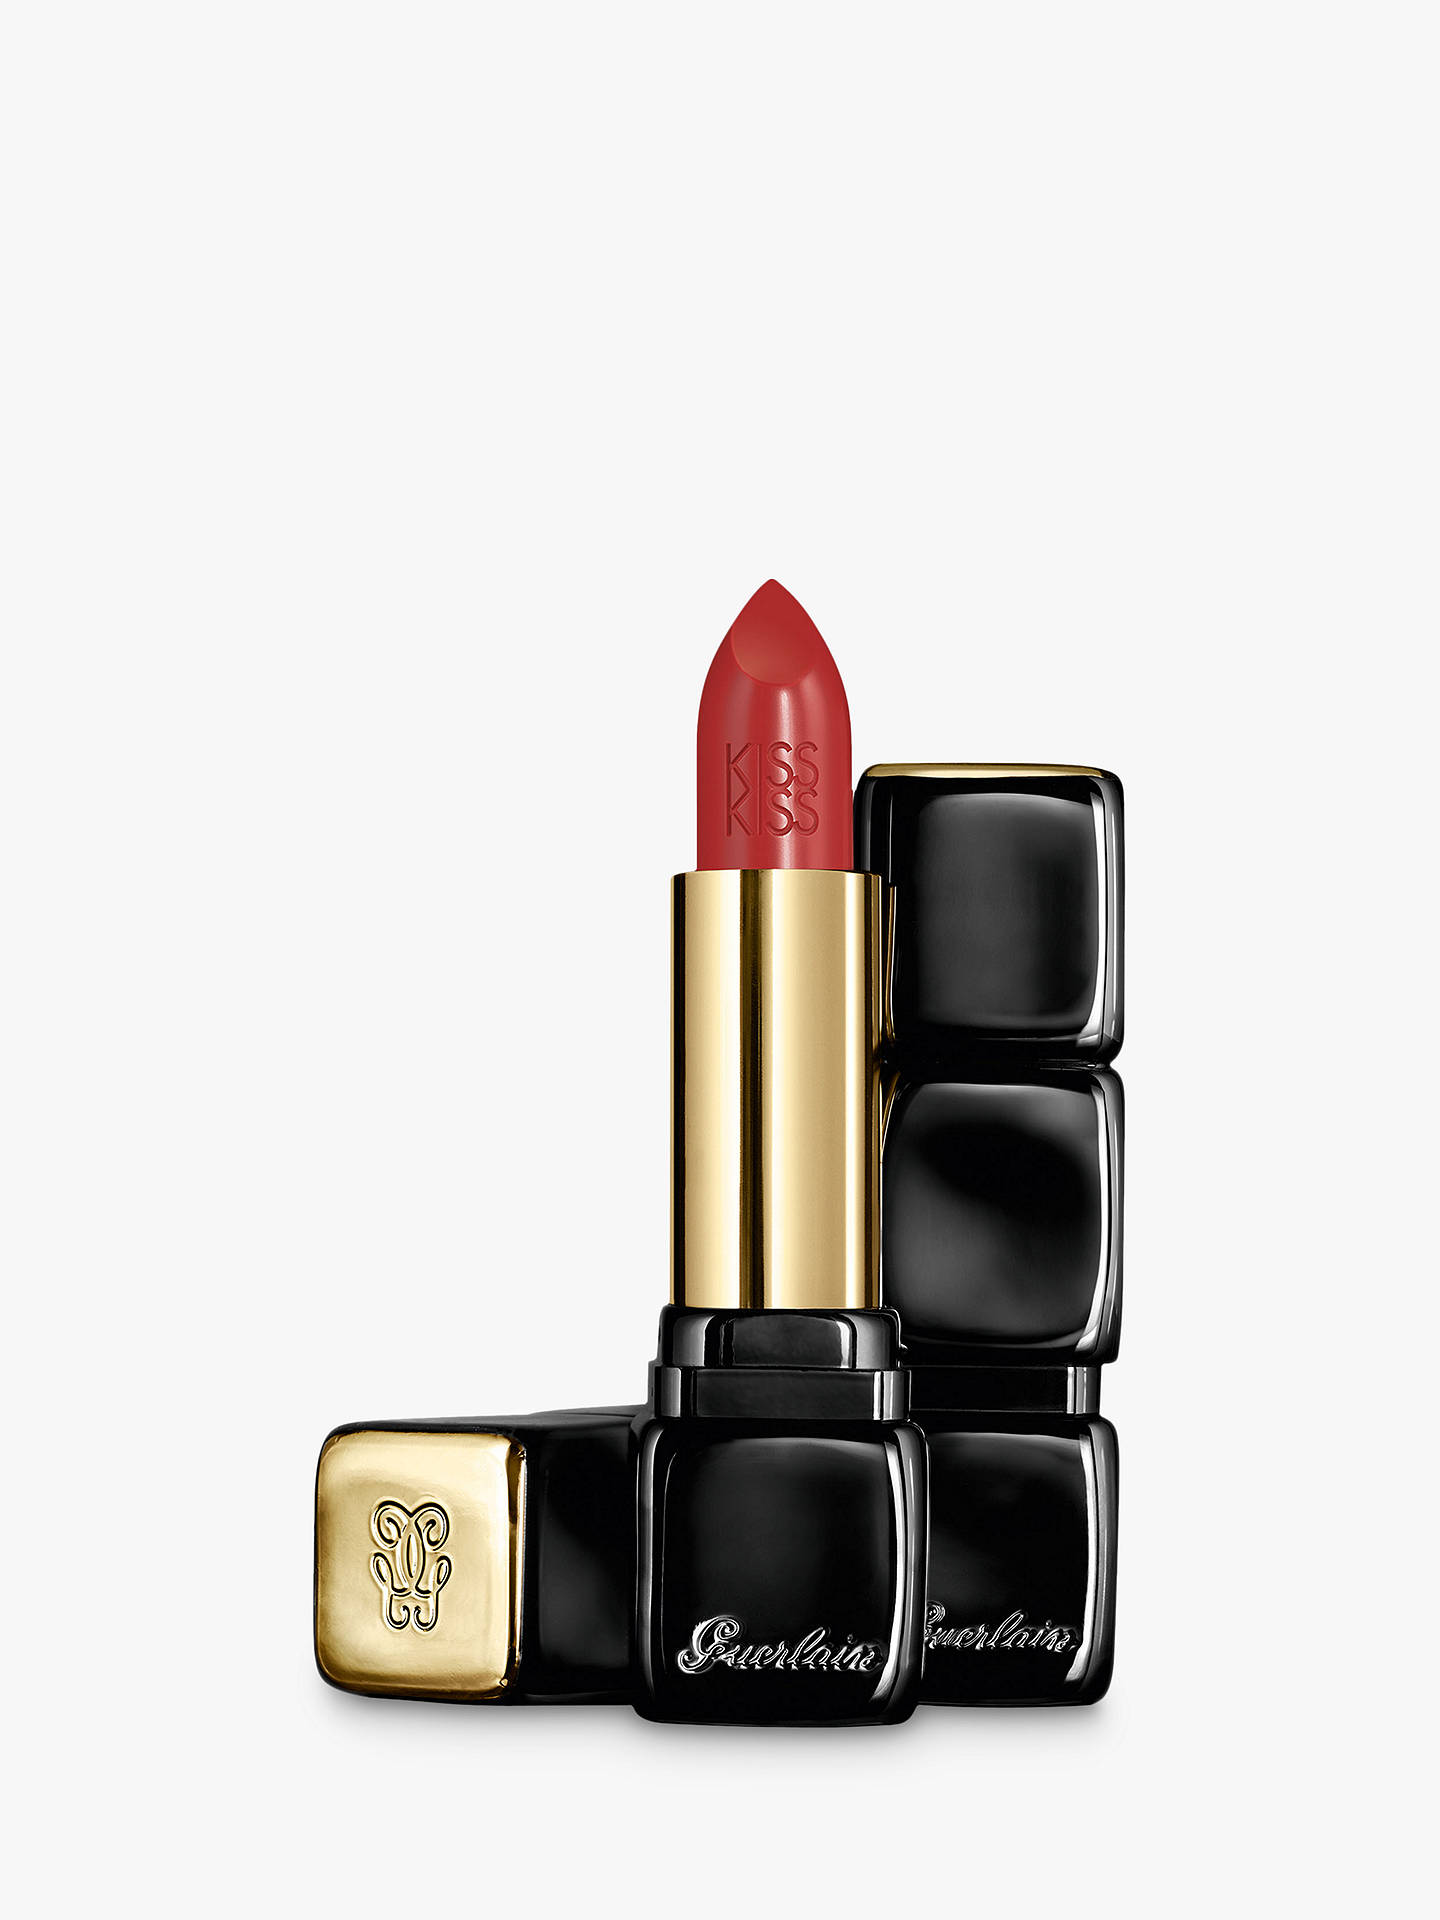 Buy Guerlain Kiss Kiss Lipstick, 330 Red Brick Online at johnlewis.com